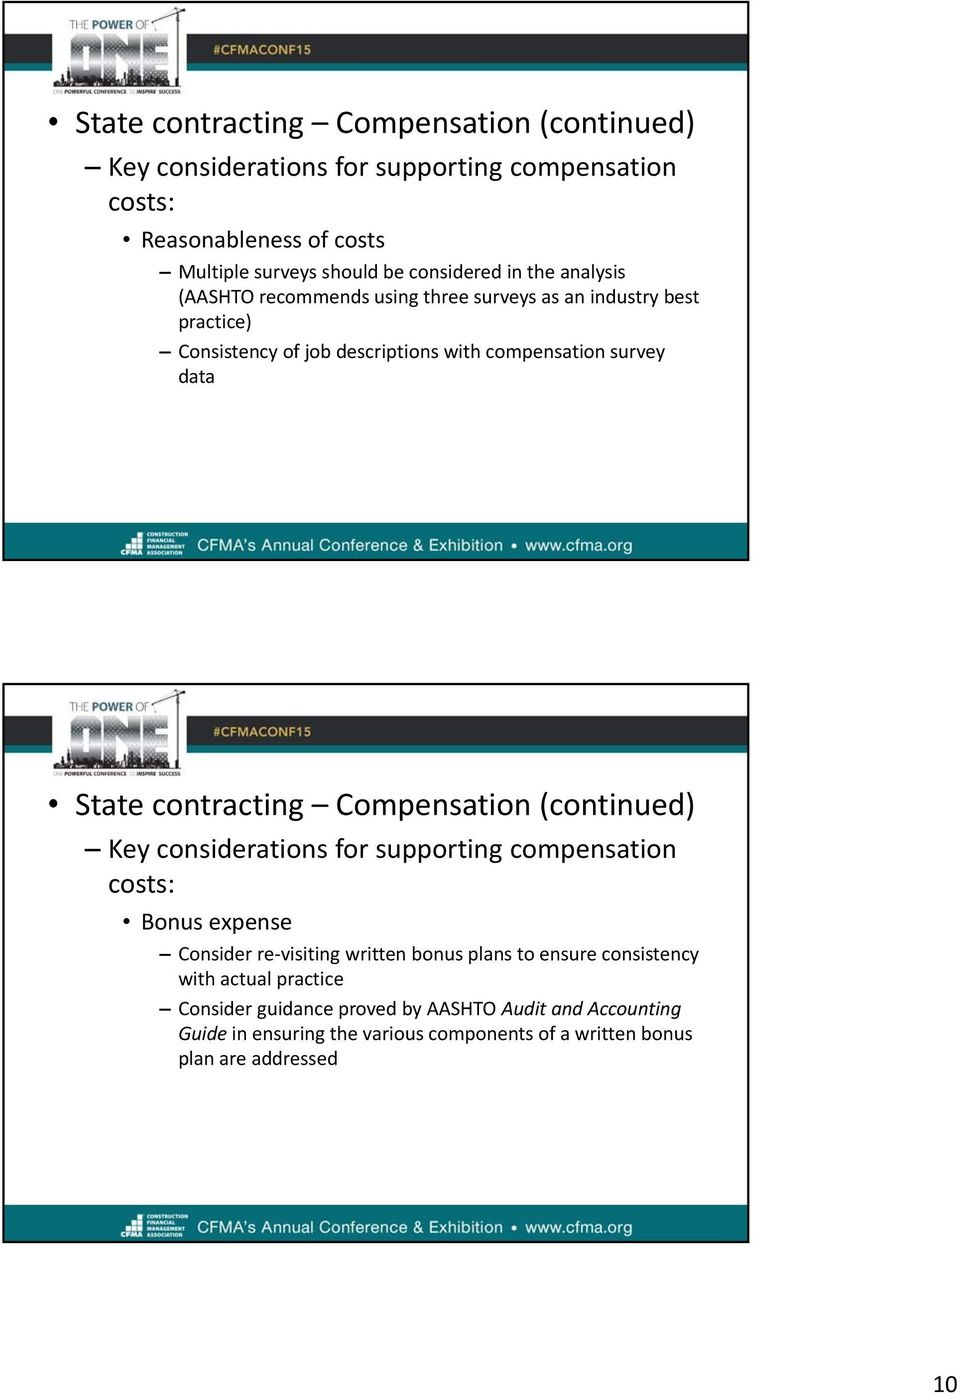 contracting Compensation (continued) Key considerations for supporting compensation costs: Bonus expense Consider re visiting written bonus plans to ensure